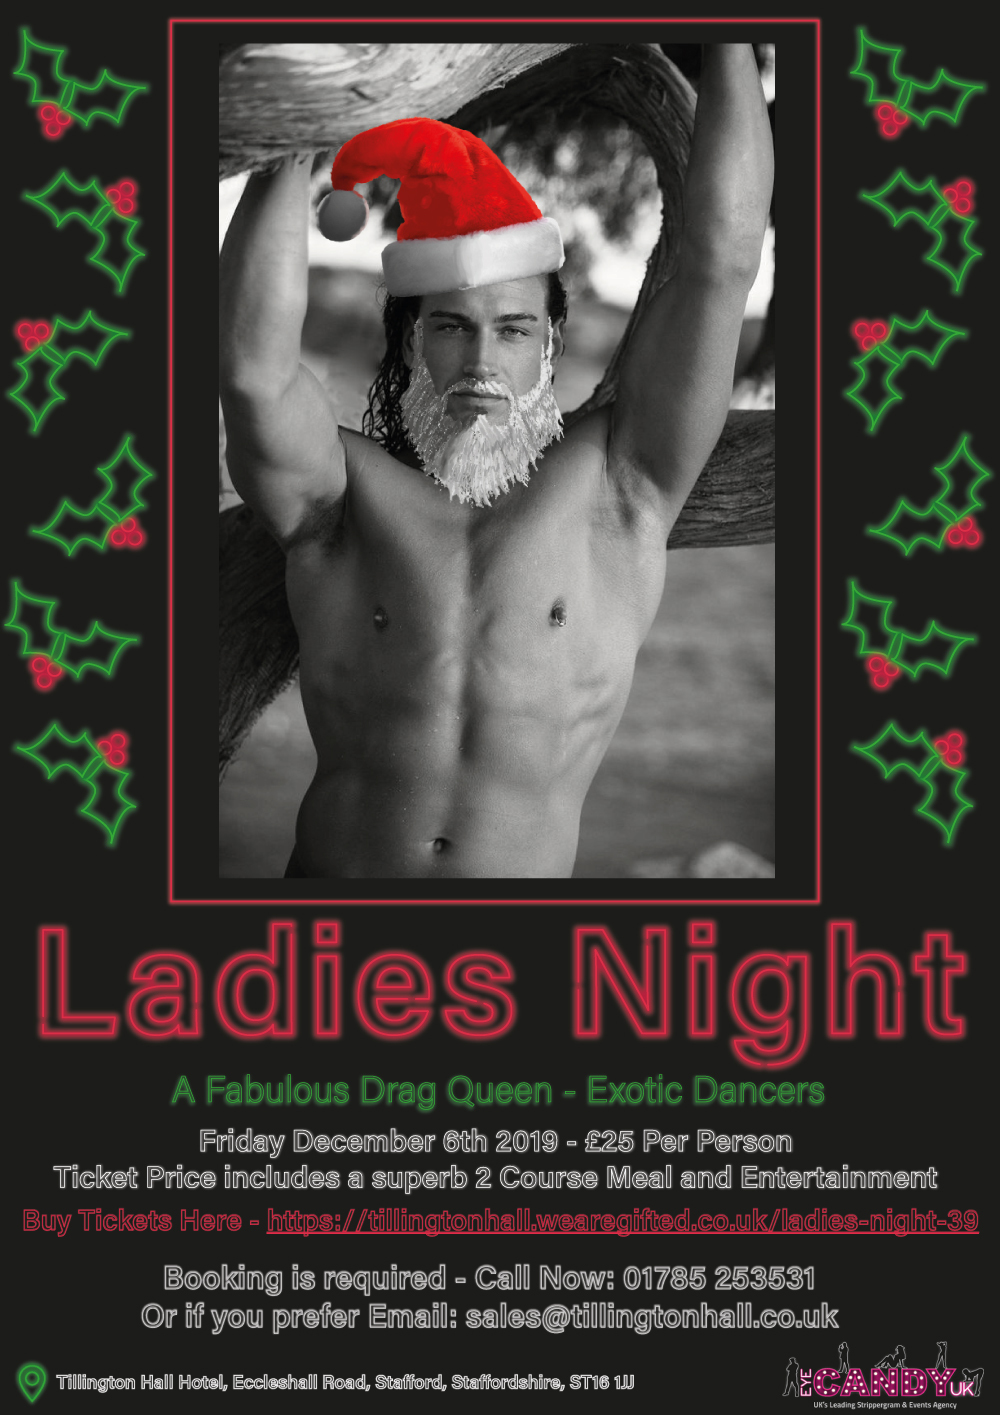 Ladies Night In Stafford At Tillington Hall Hotel